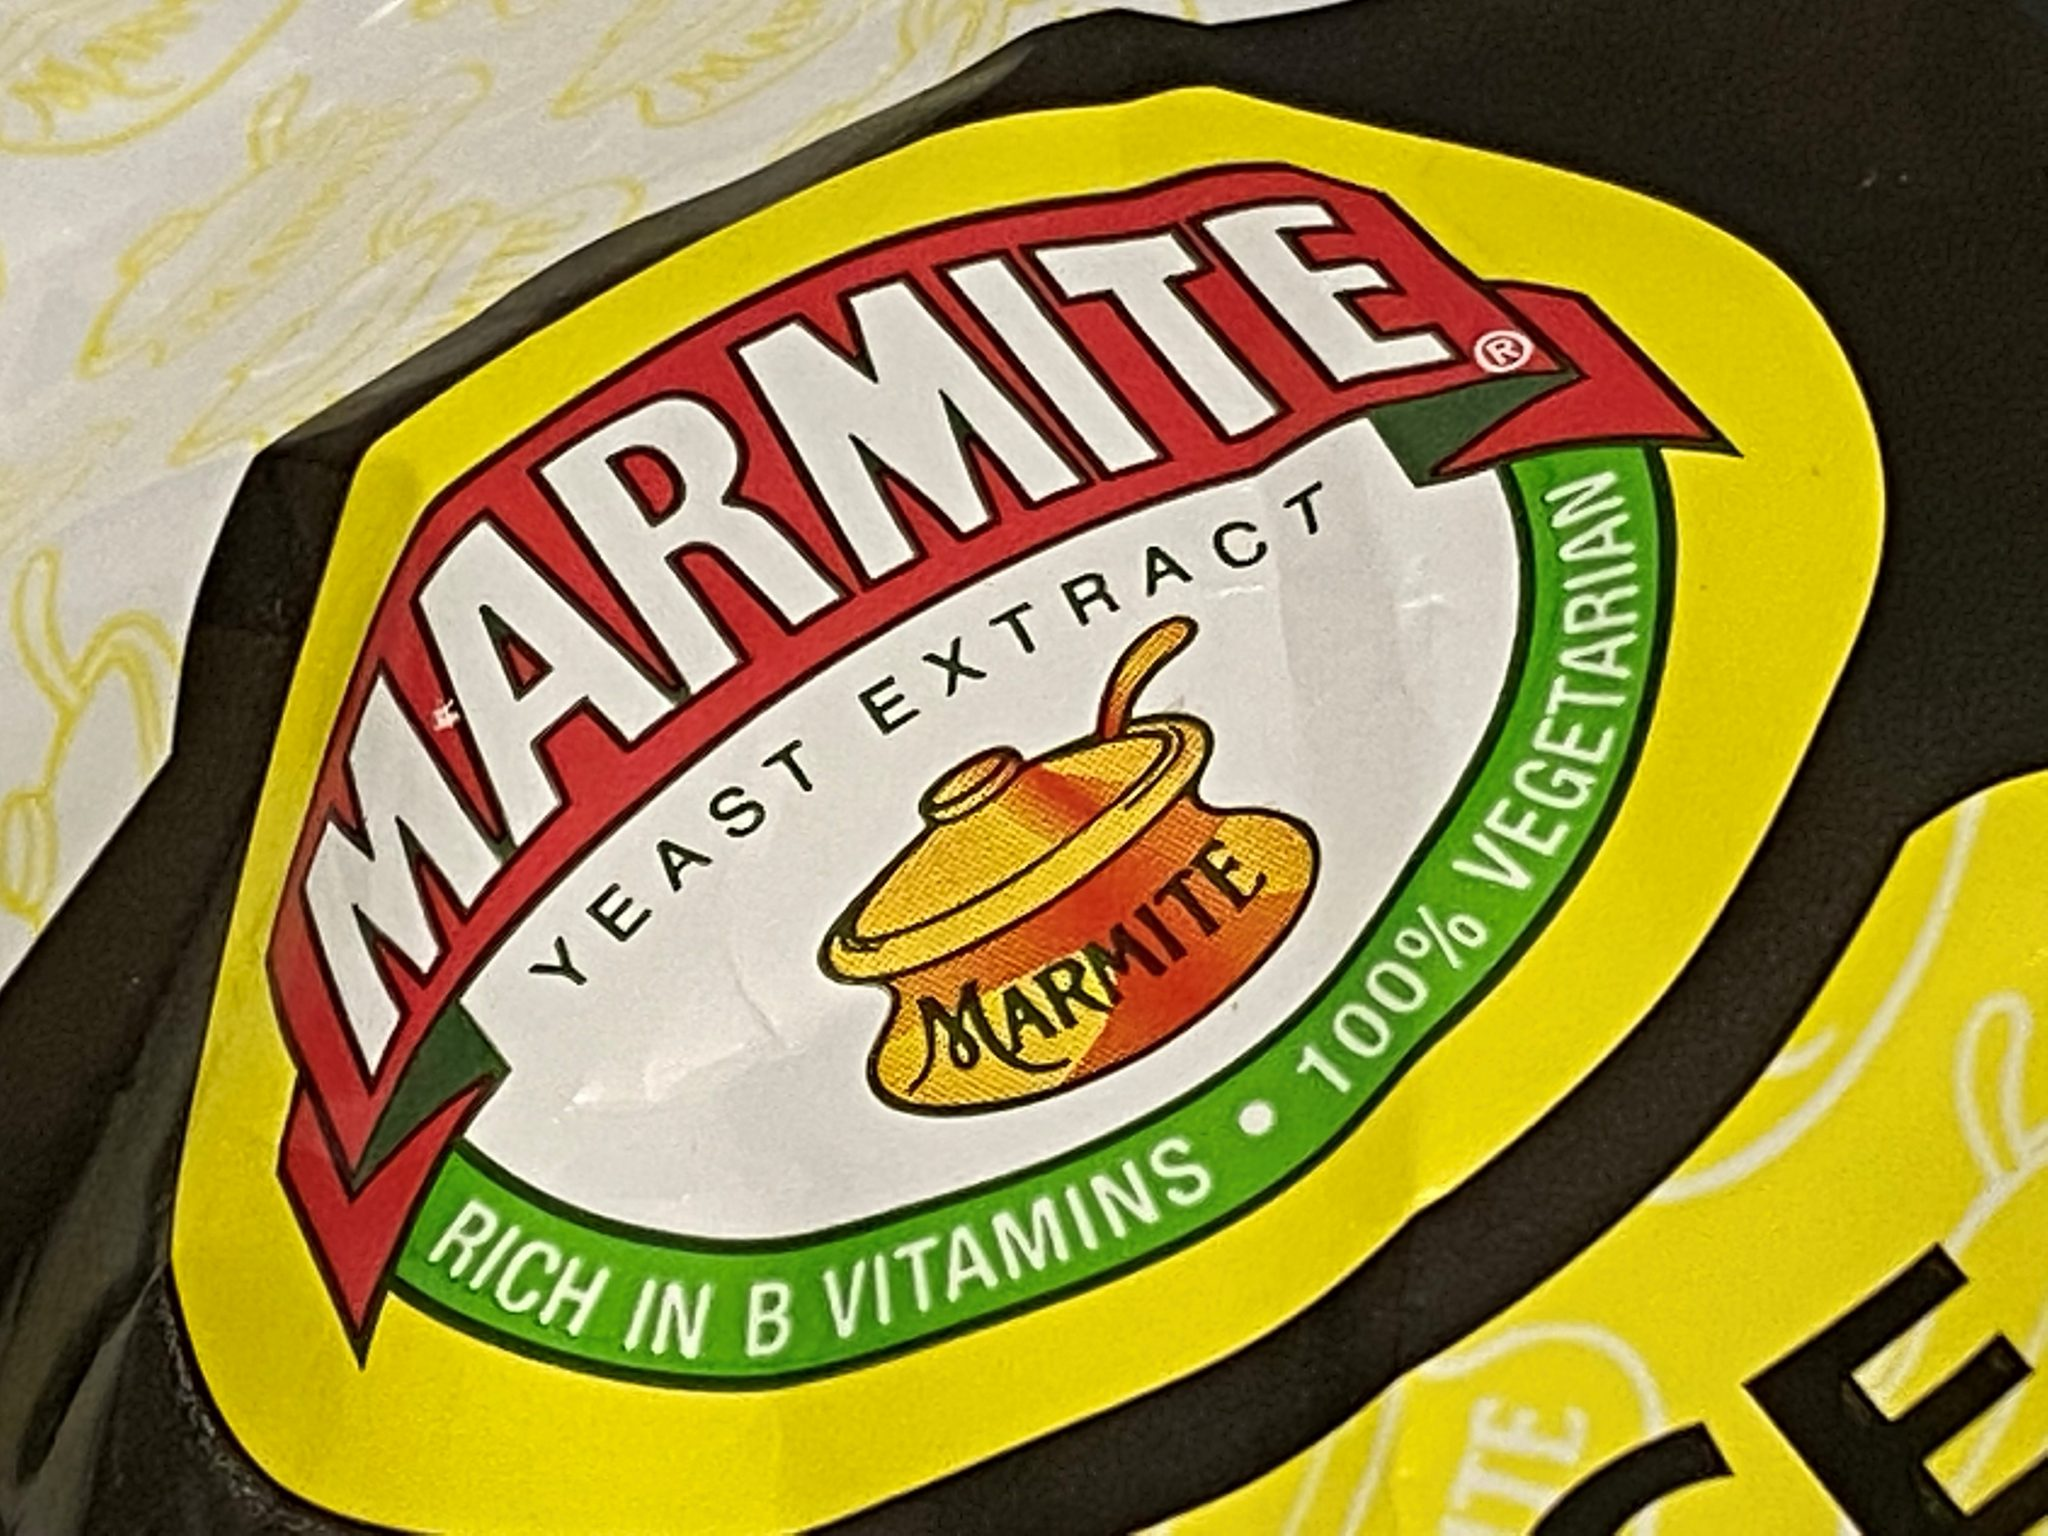 Unilever, which owns Marmite and a range of food and home brands, is putting its green agenda to a shareholder vote